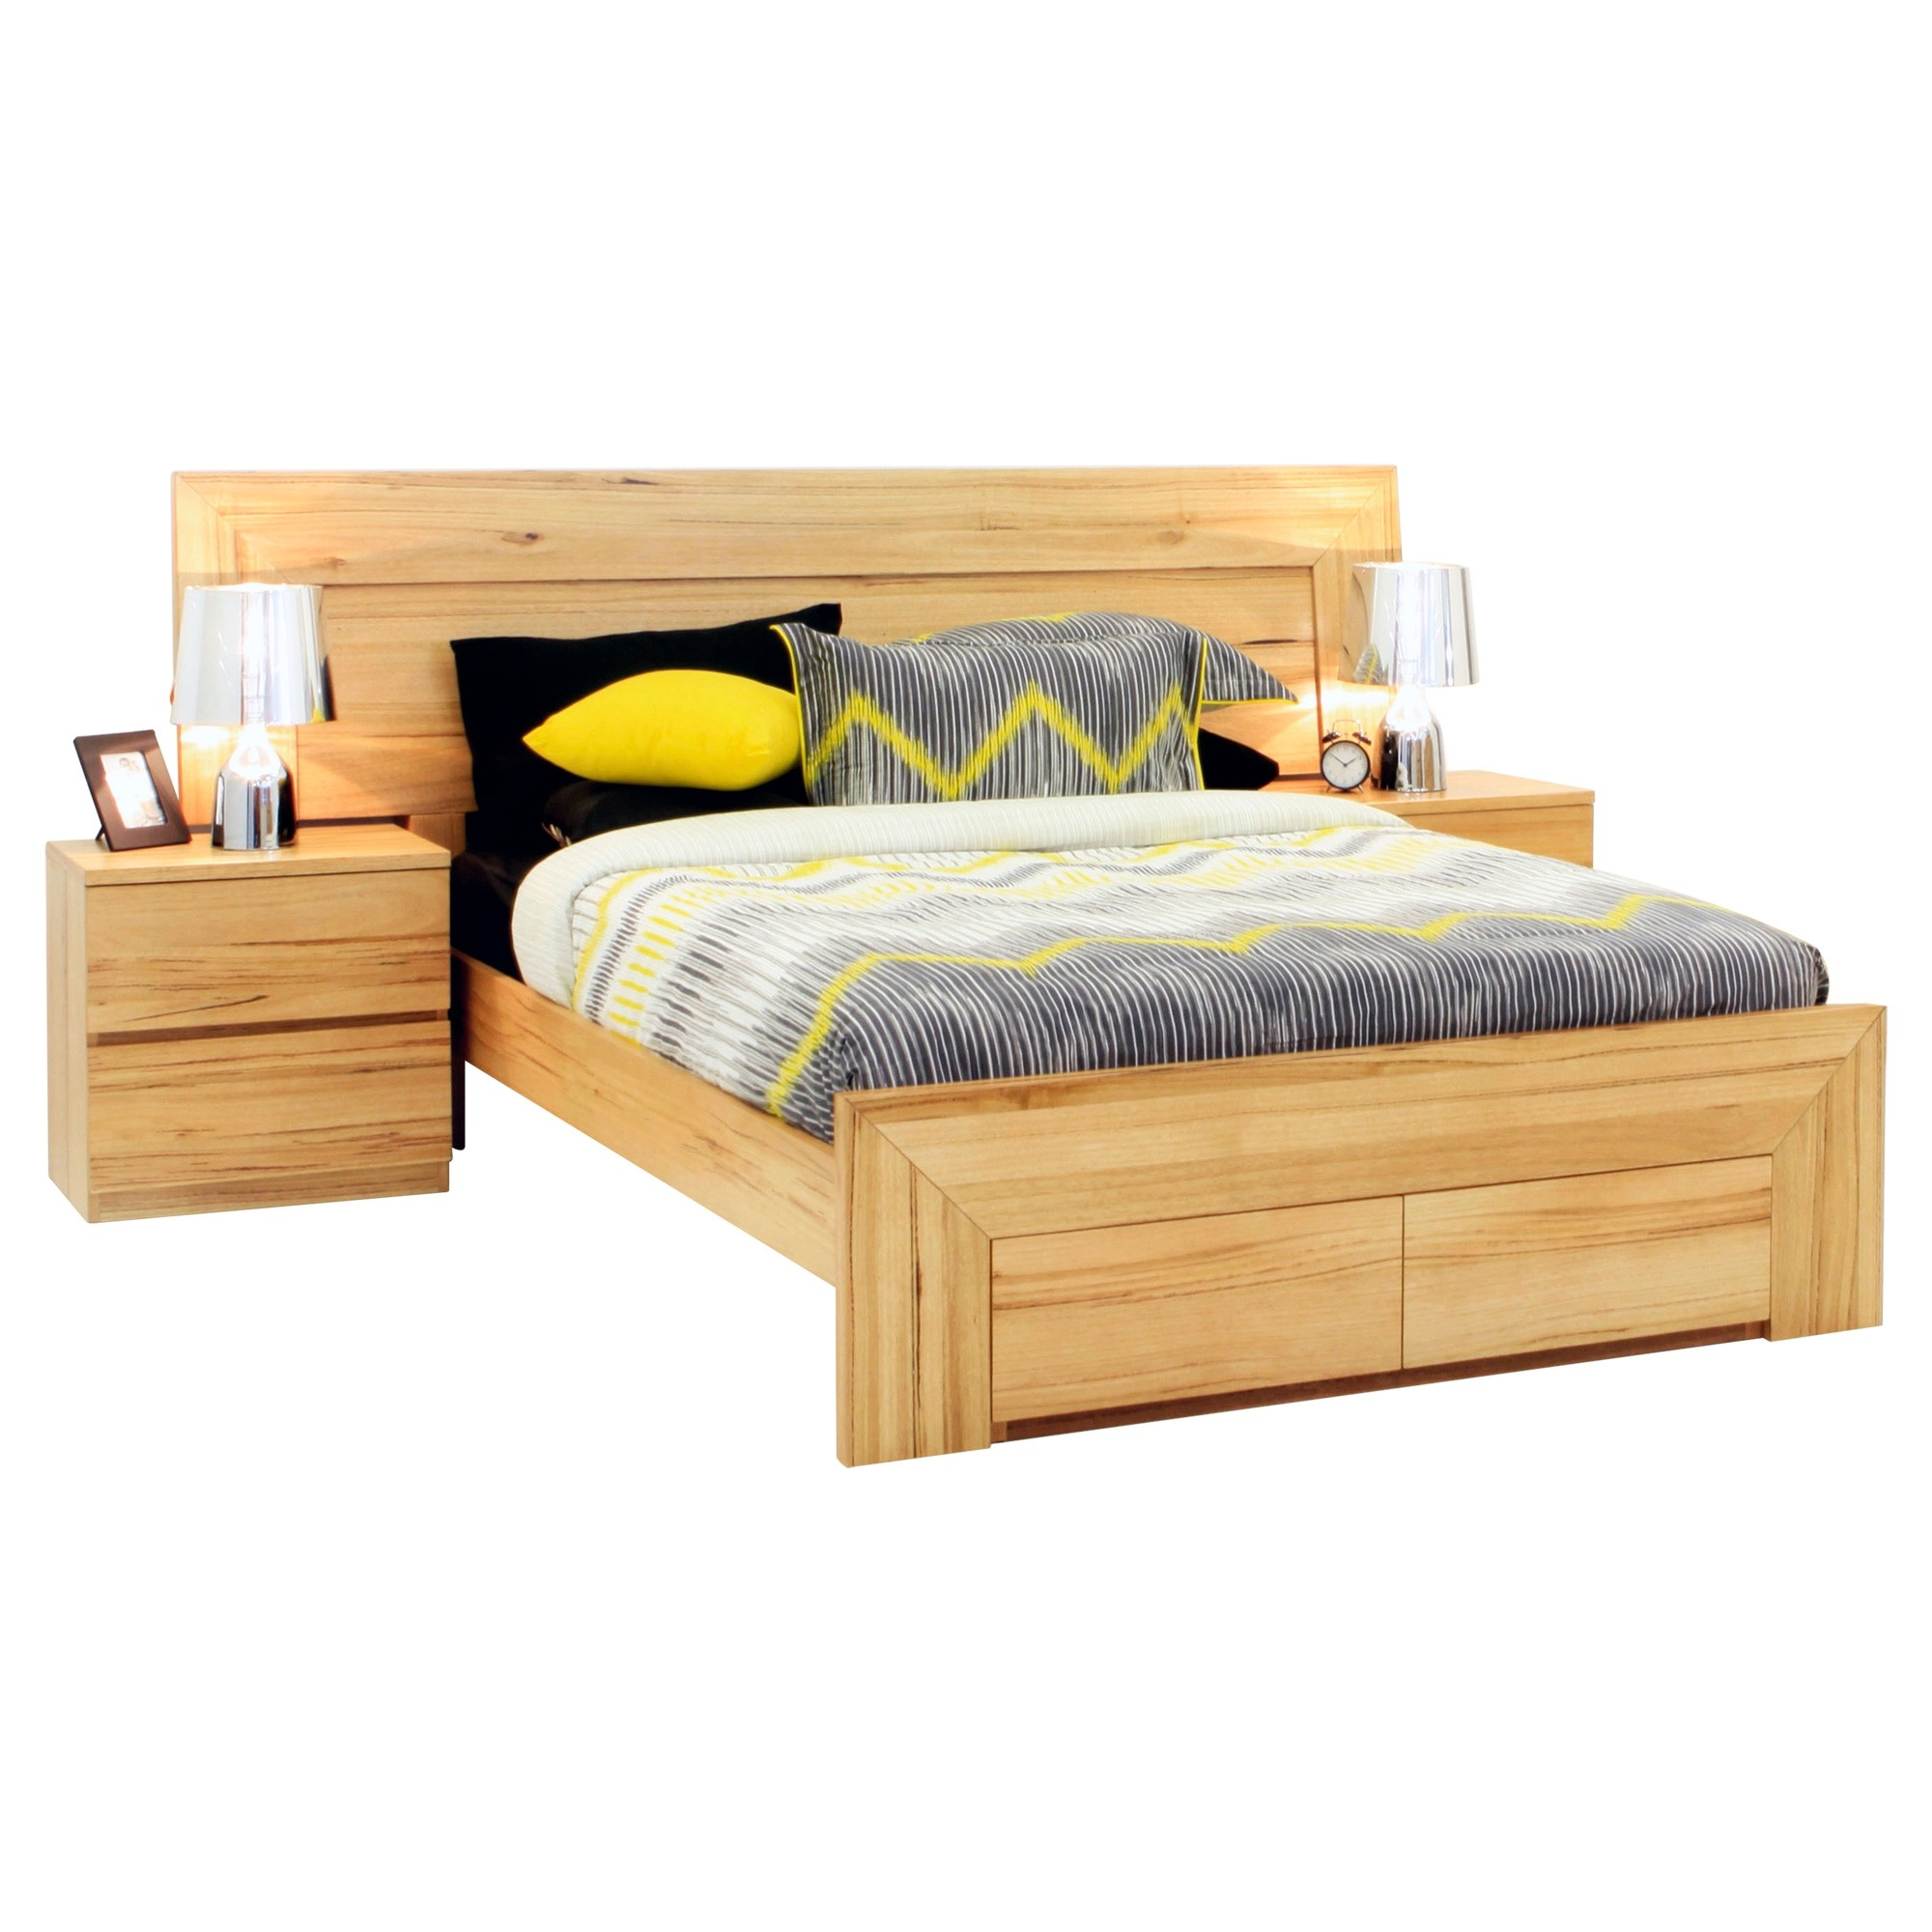 Renmark Messmate Timber Bed with End Drawers, Queen